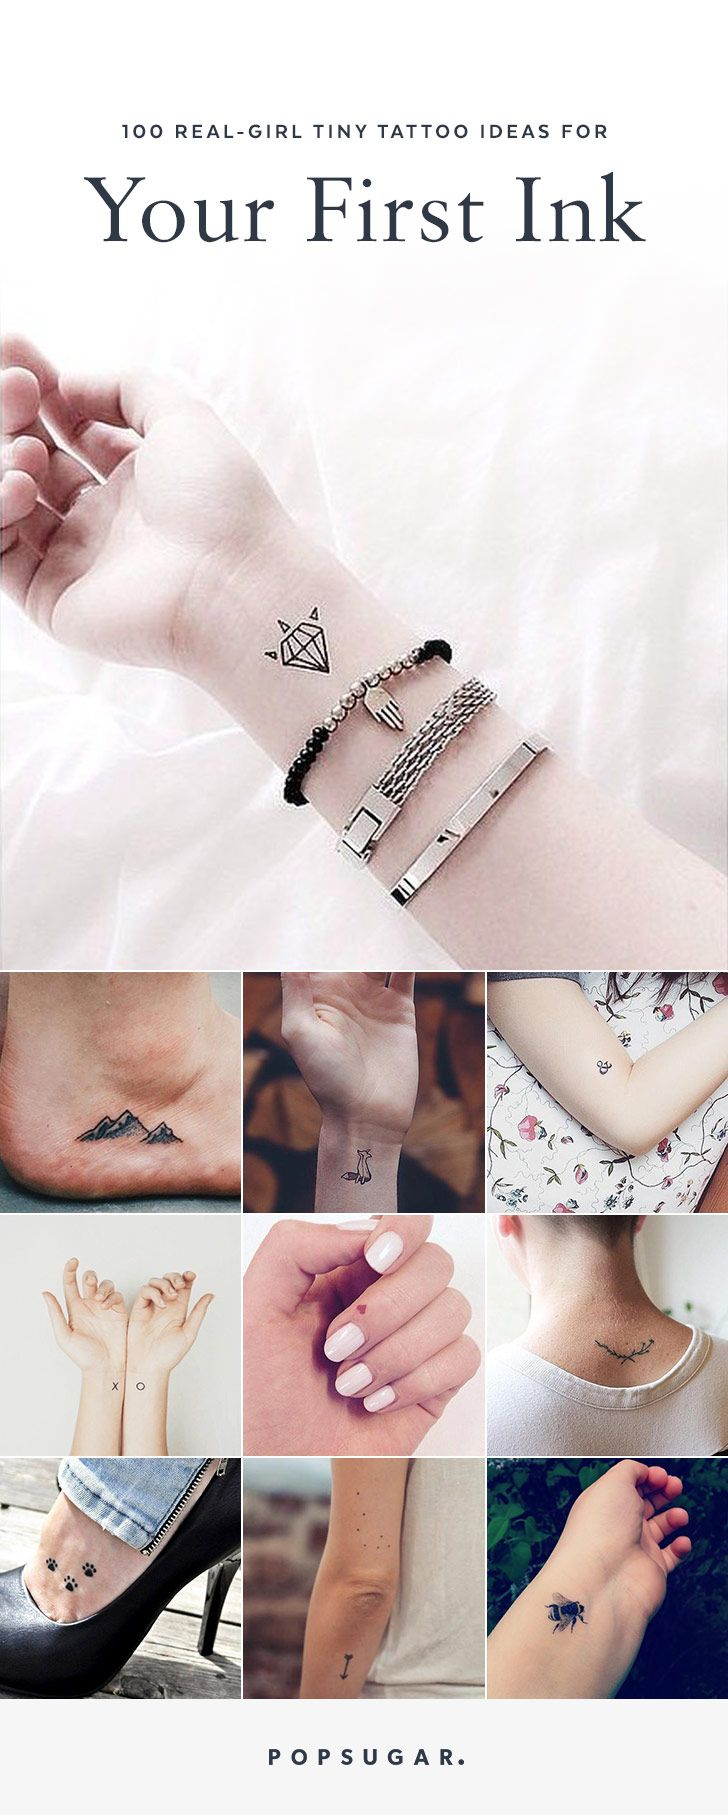 Cute tattoo ideas for girls  realgirl tiny tattoo ideas for your first ink  tattoo girls